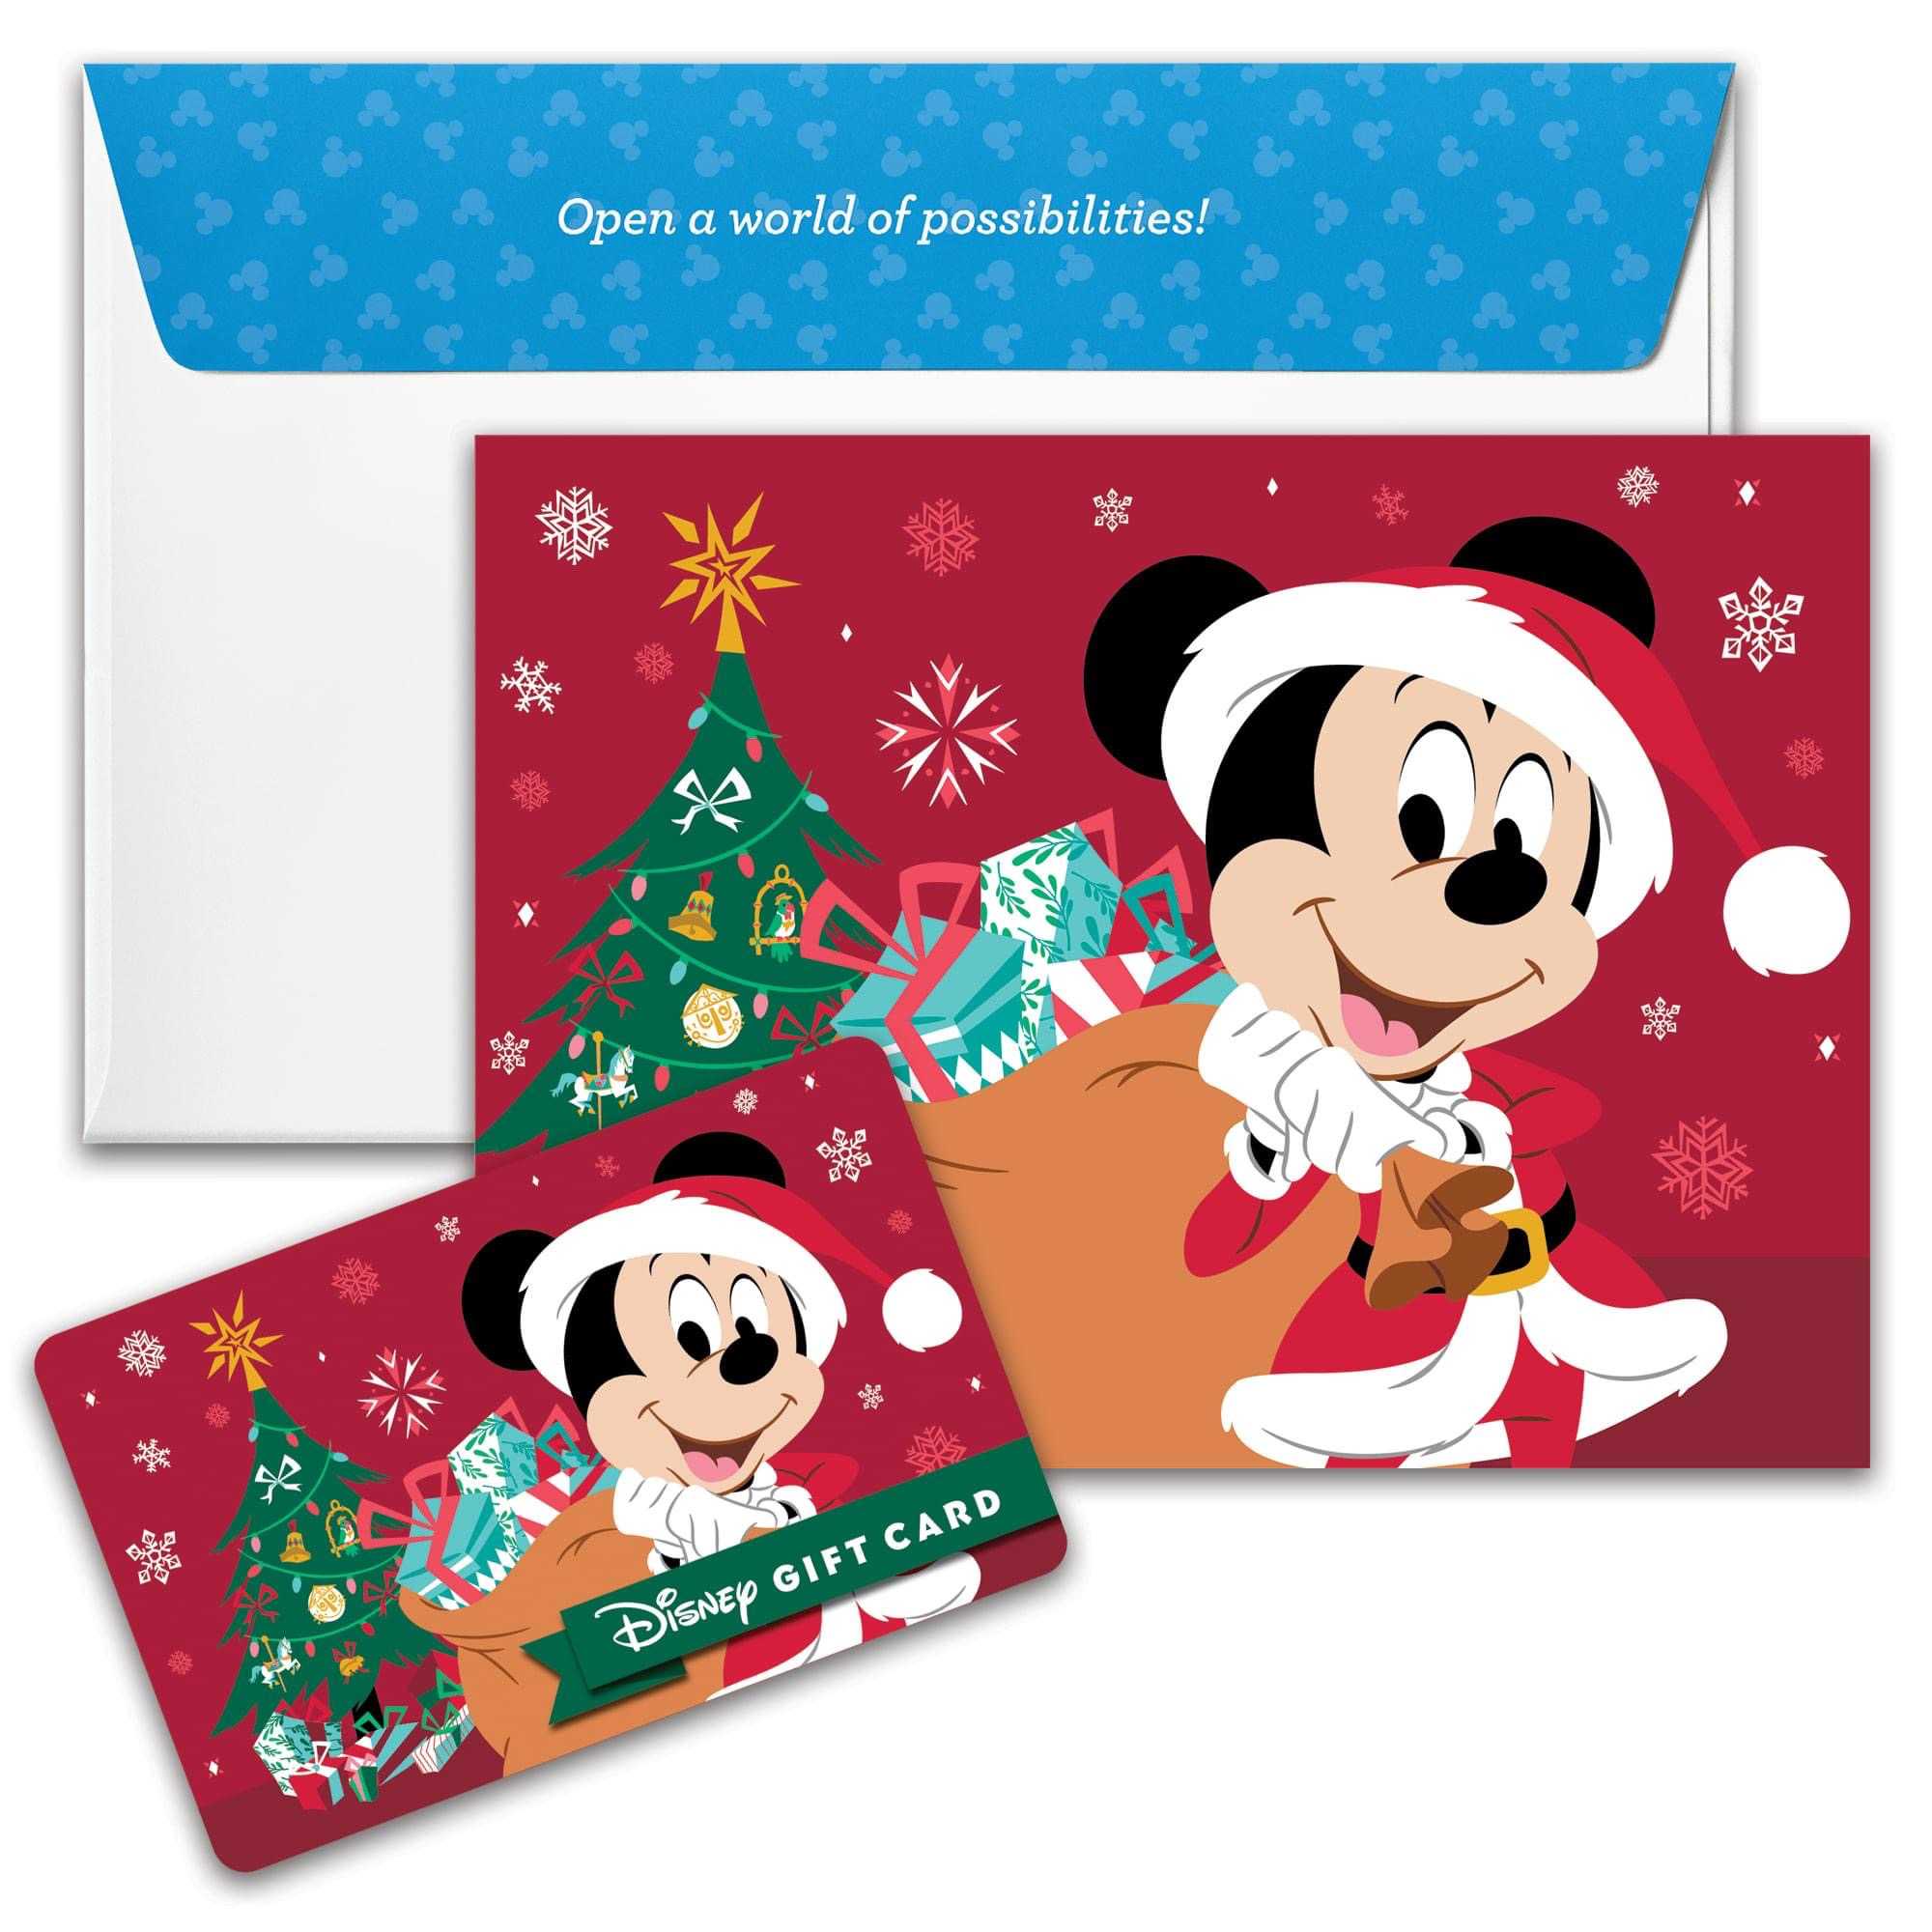 New Disney Gift Card Designs for Your Holiday Gift Giving from shopDisney! 12